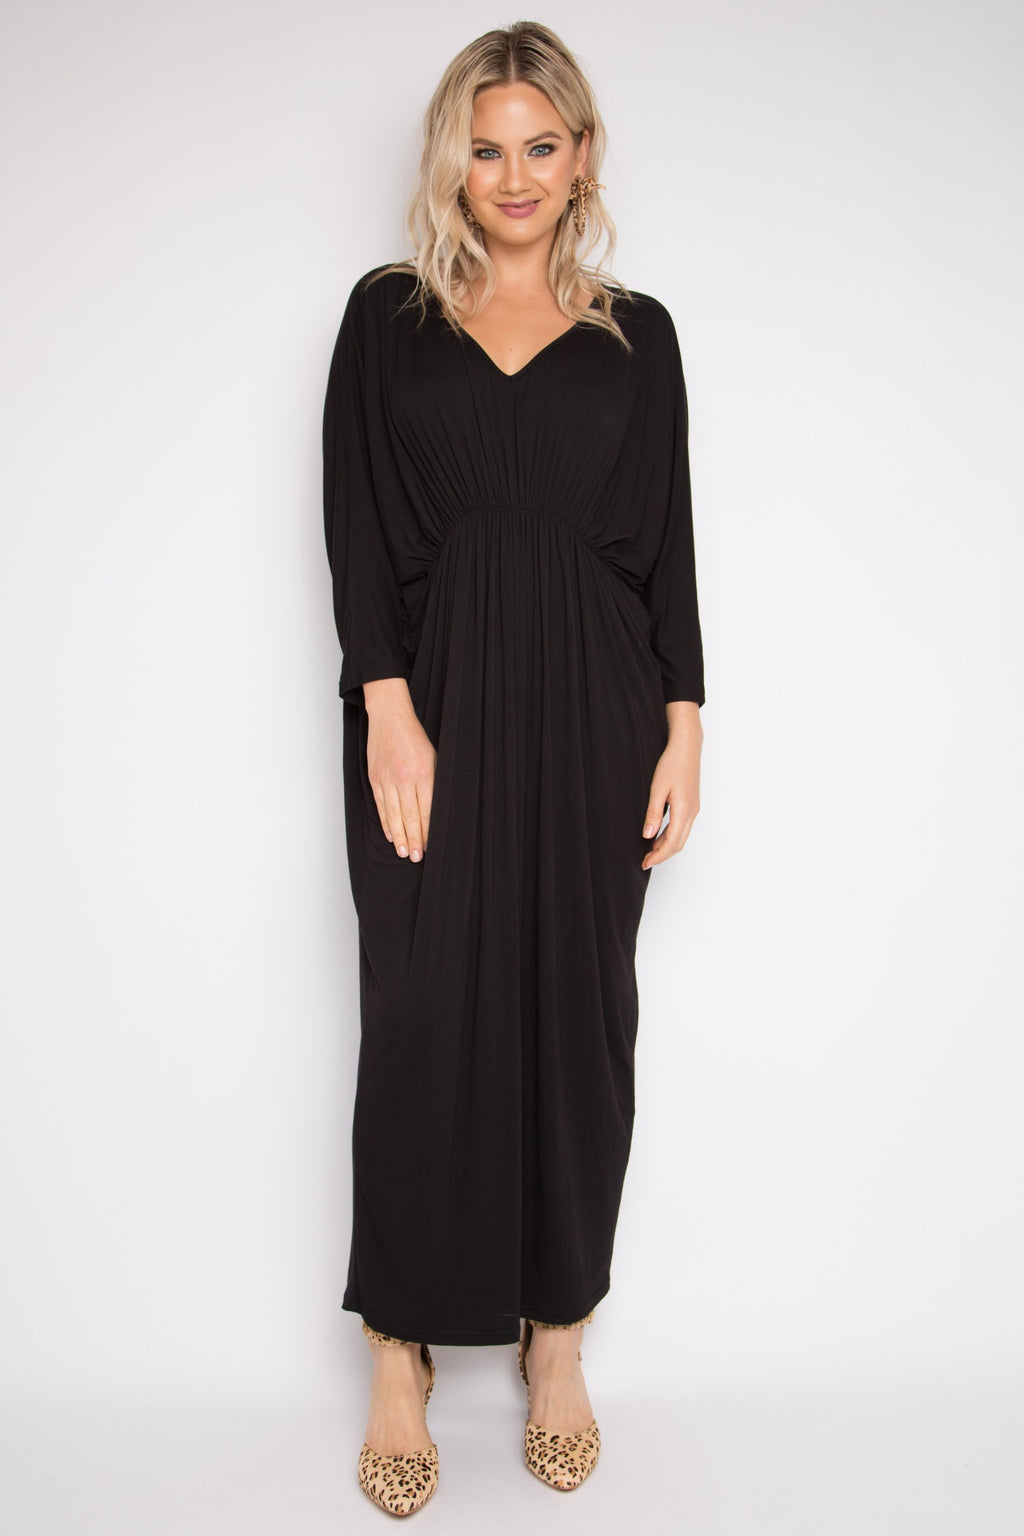 Bamboo Gathered Long Sleeve Maxi Miracle Dress in Black